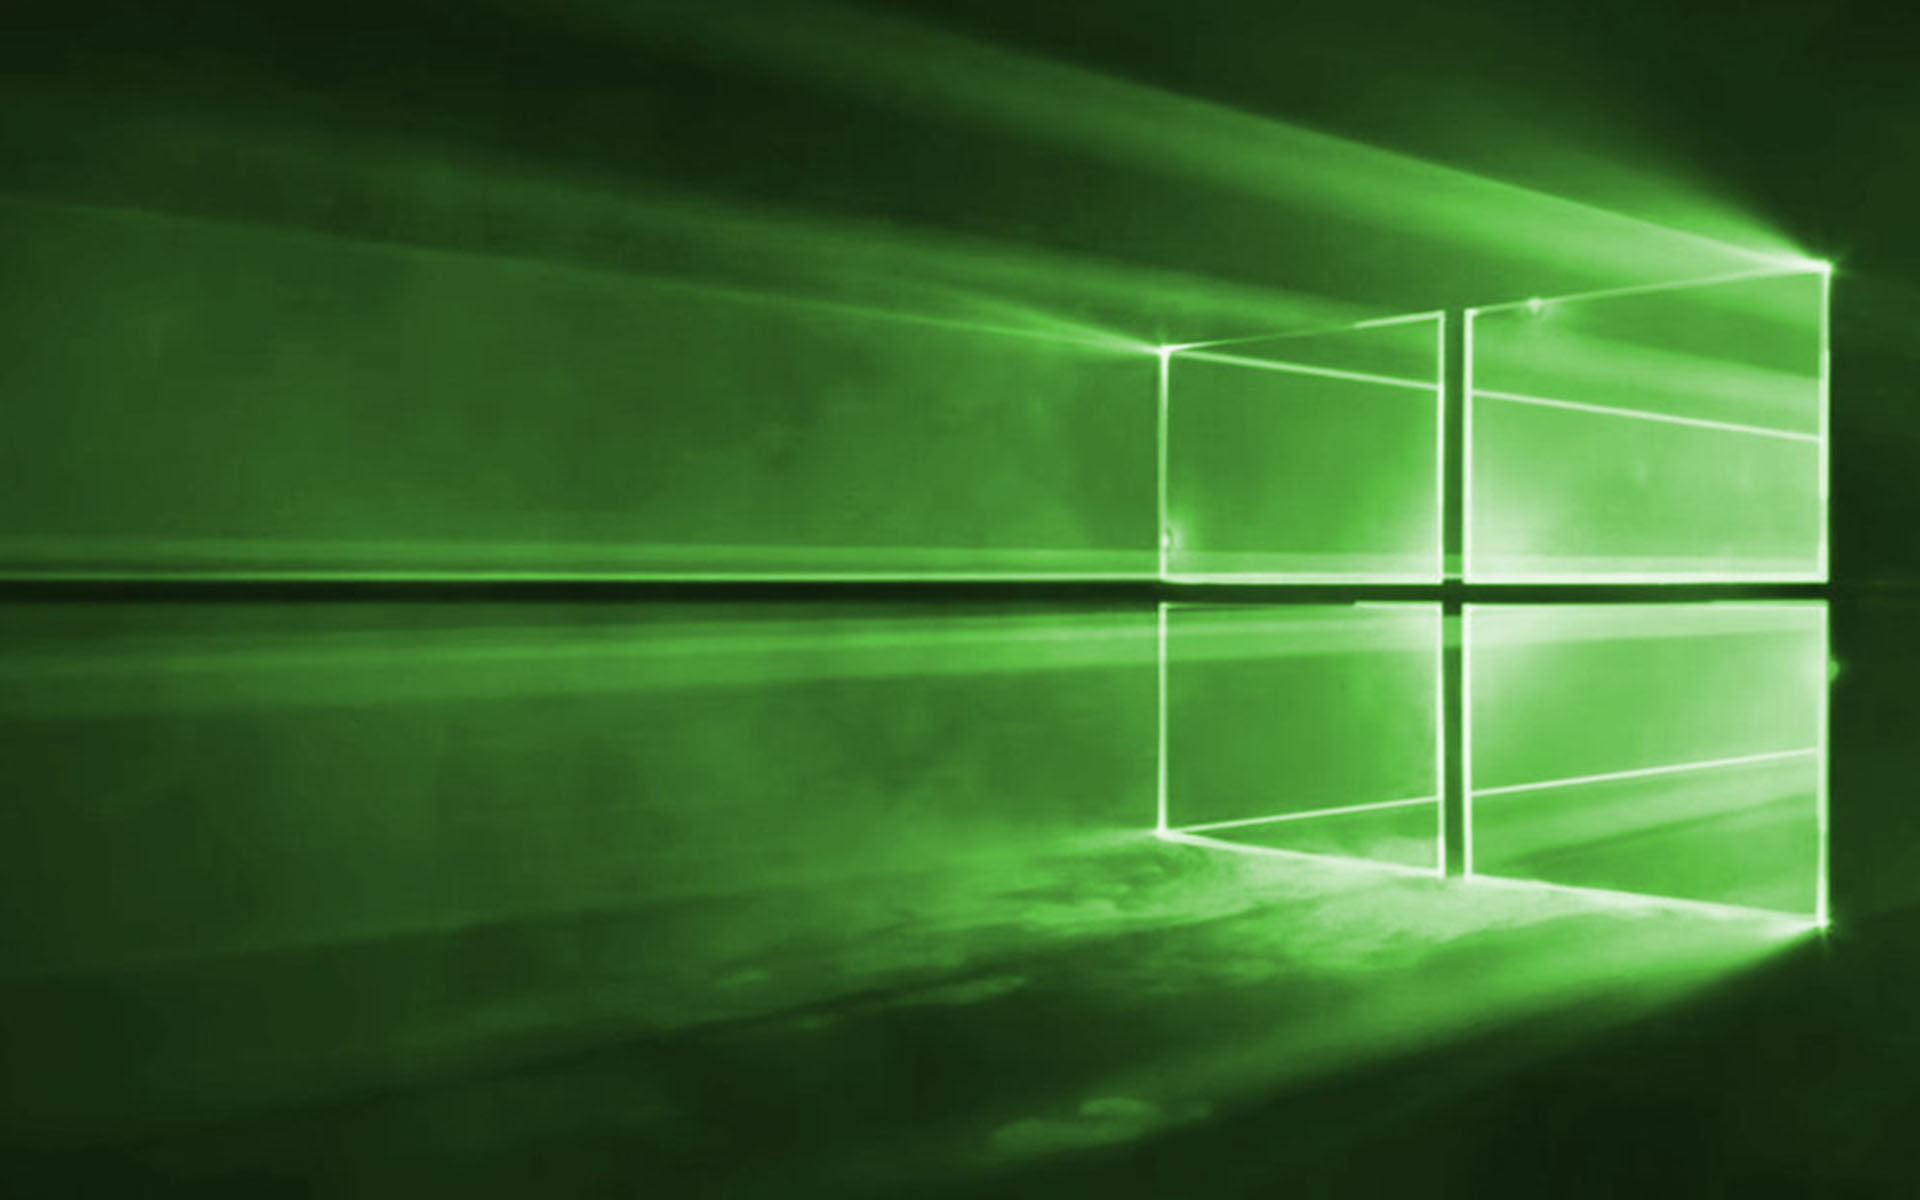 of Hd Wallpapers 19201080 Windows 10 and images to download 1920x1200